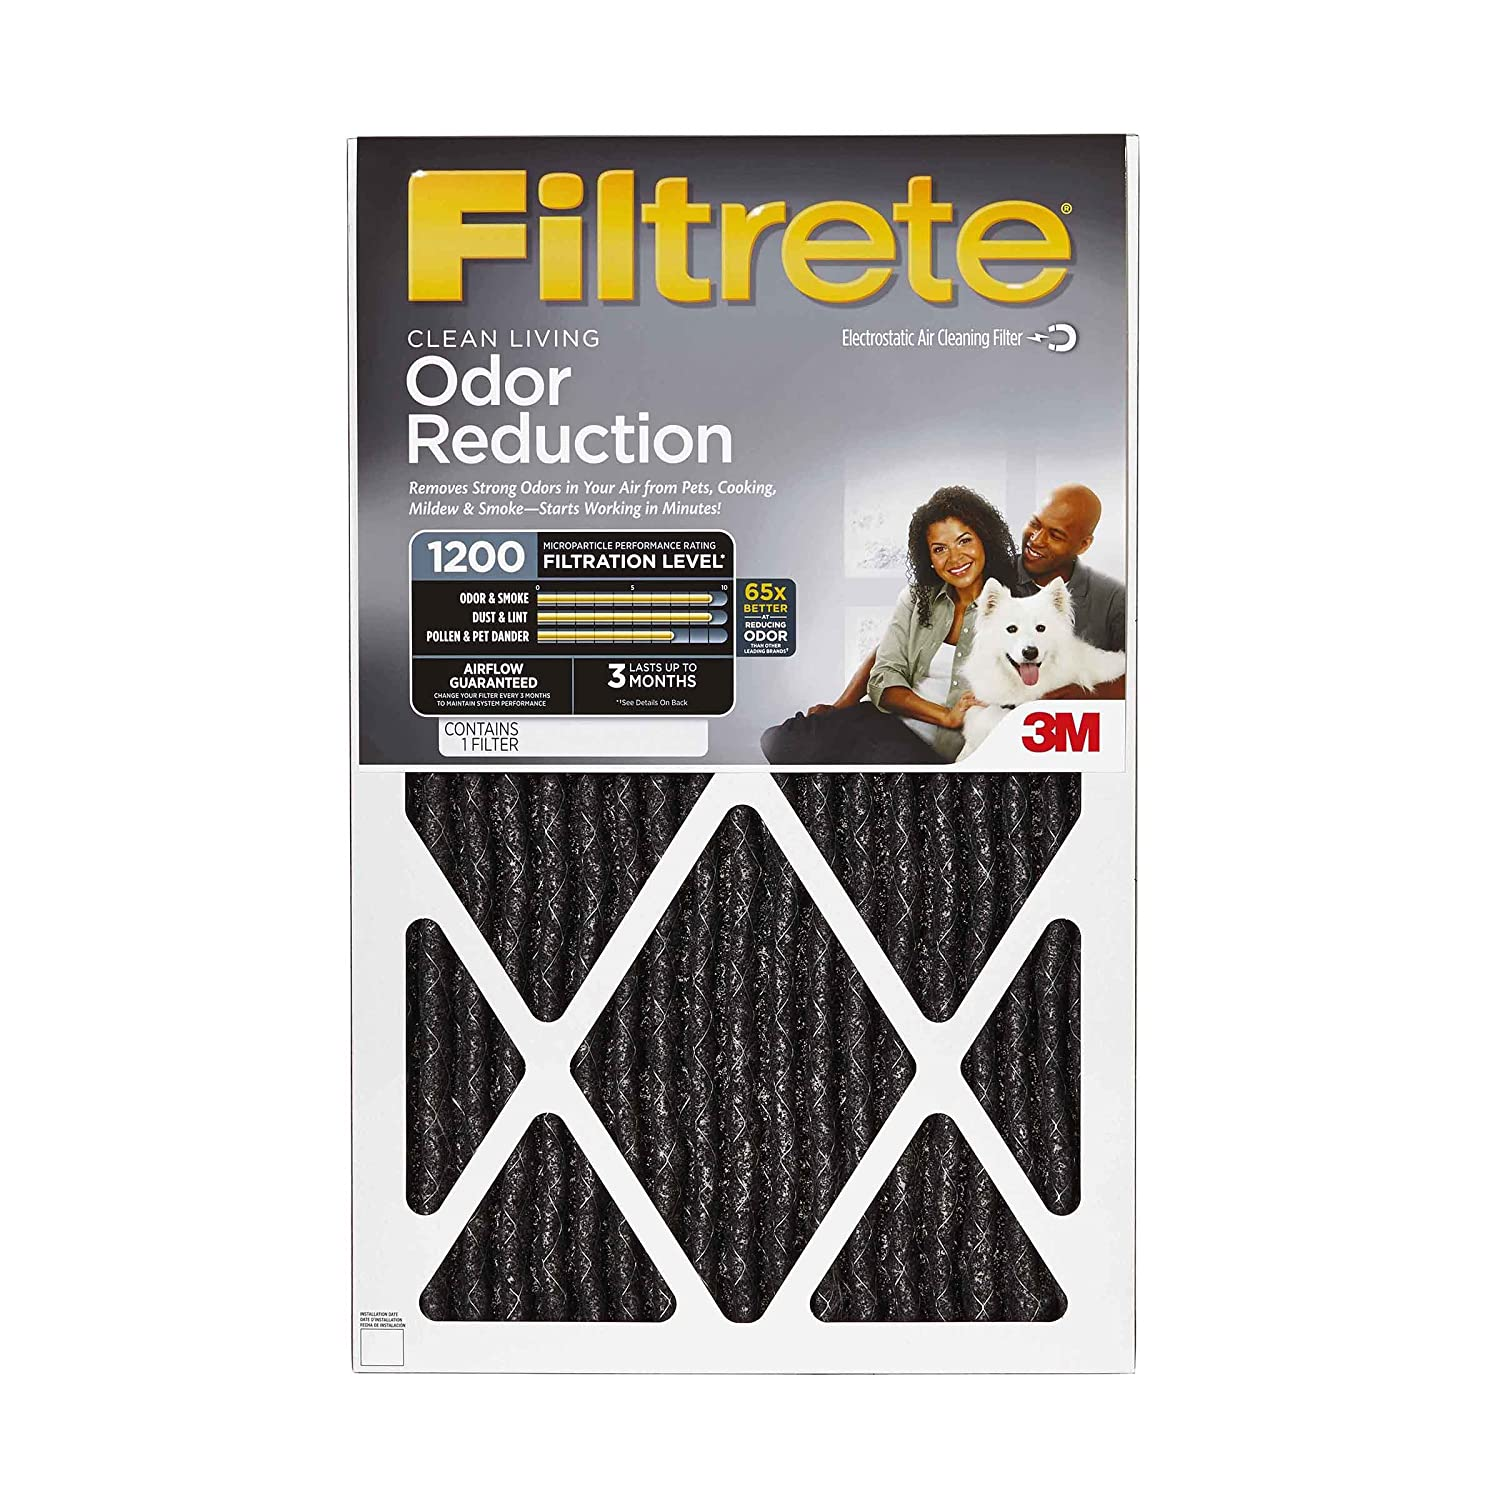 Filtrete Allergen Defense Odor Reduction AC Furnace Air Filter, MPR 1200, 20 x 20 x 1-Inches, 2-Pack AOR02-2PK-6E